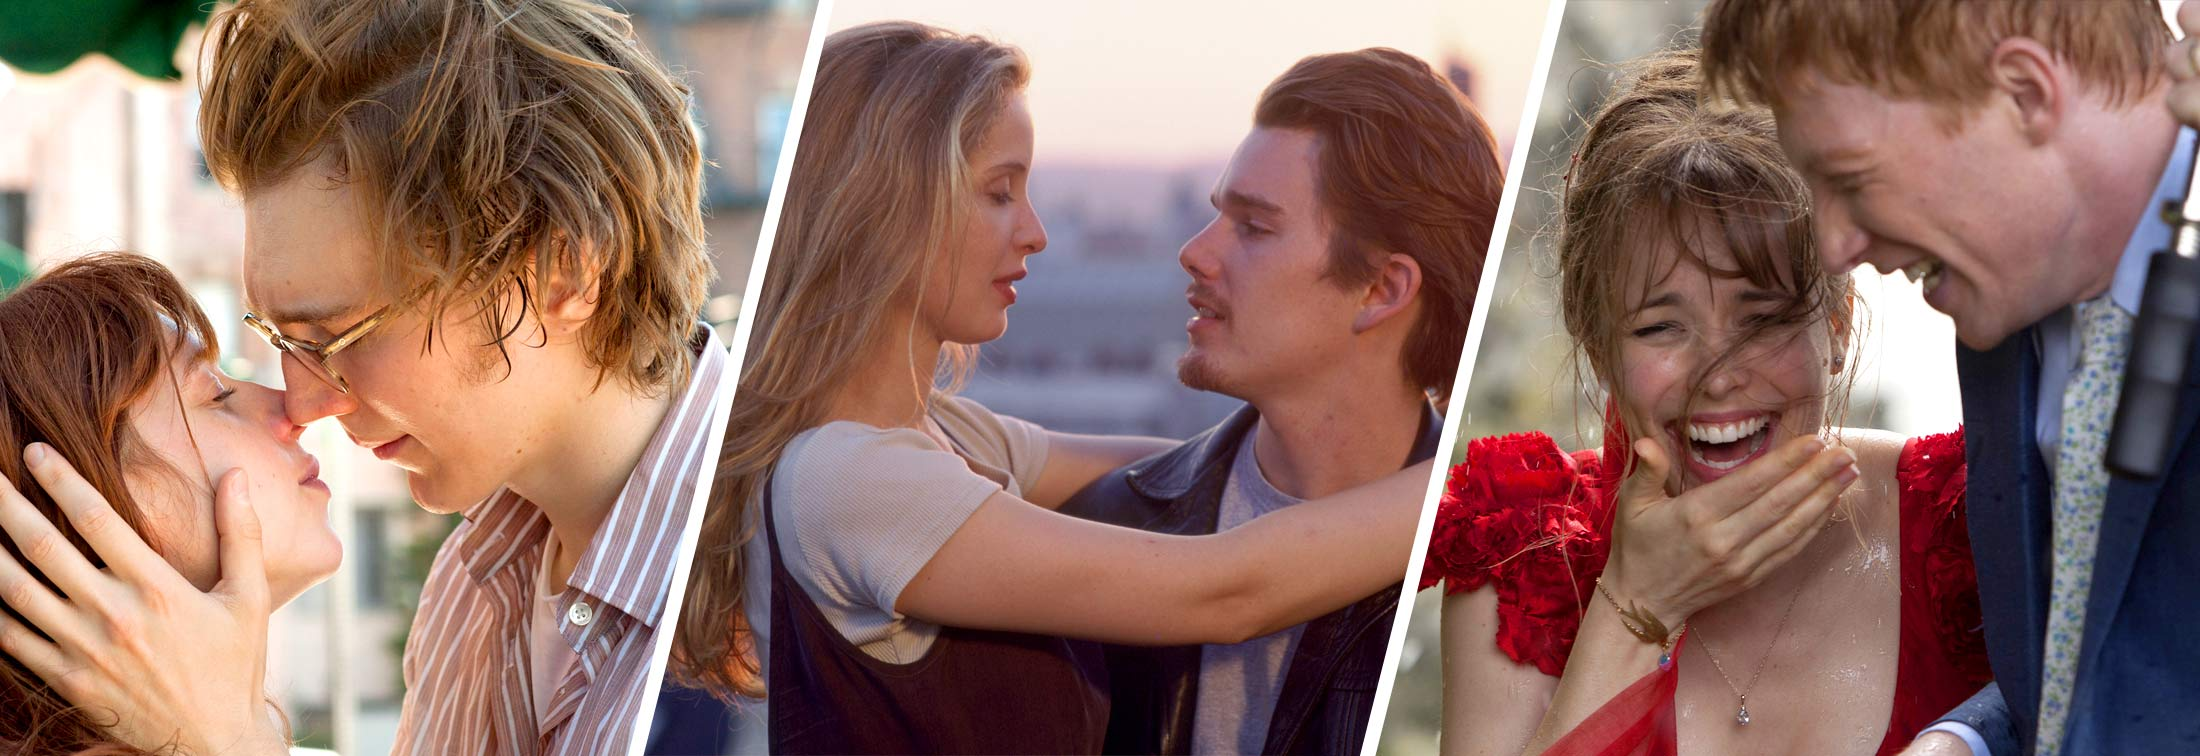 Lockdown and Catch Up - The best romance films streaming right now